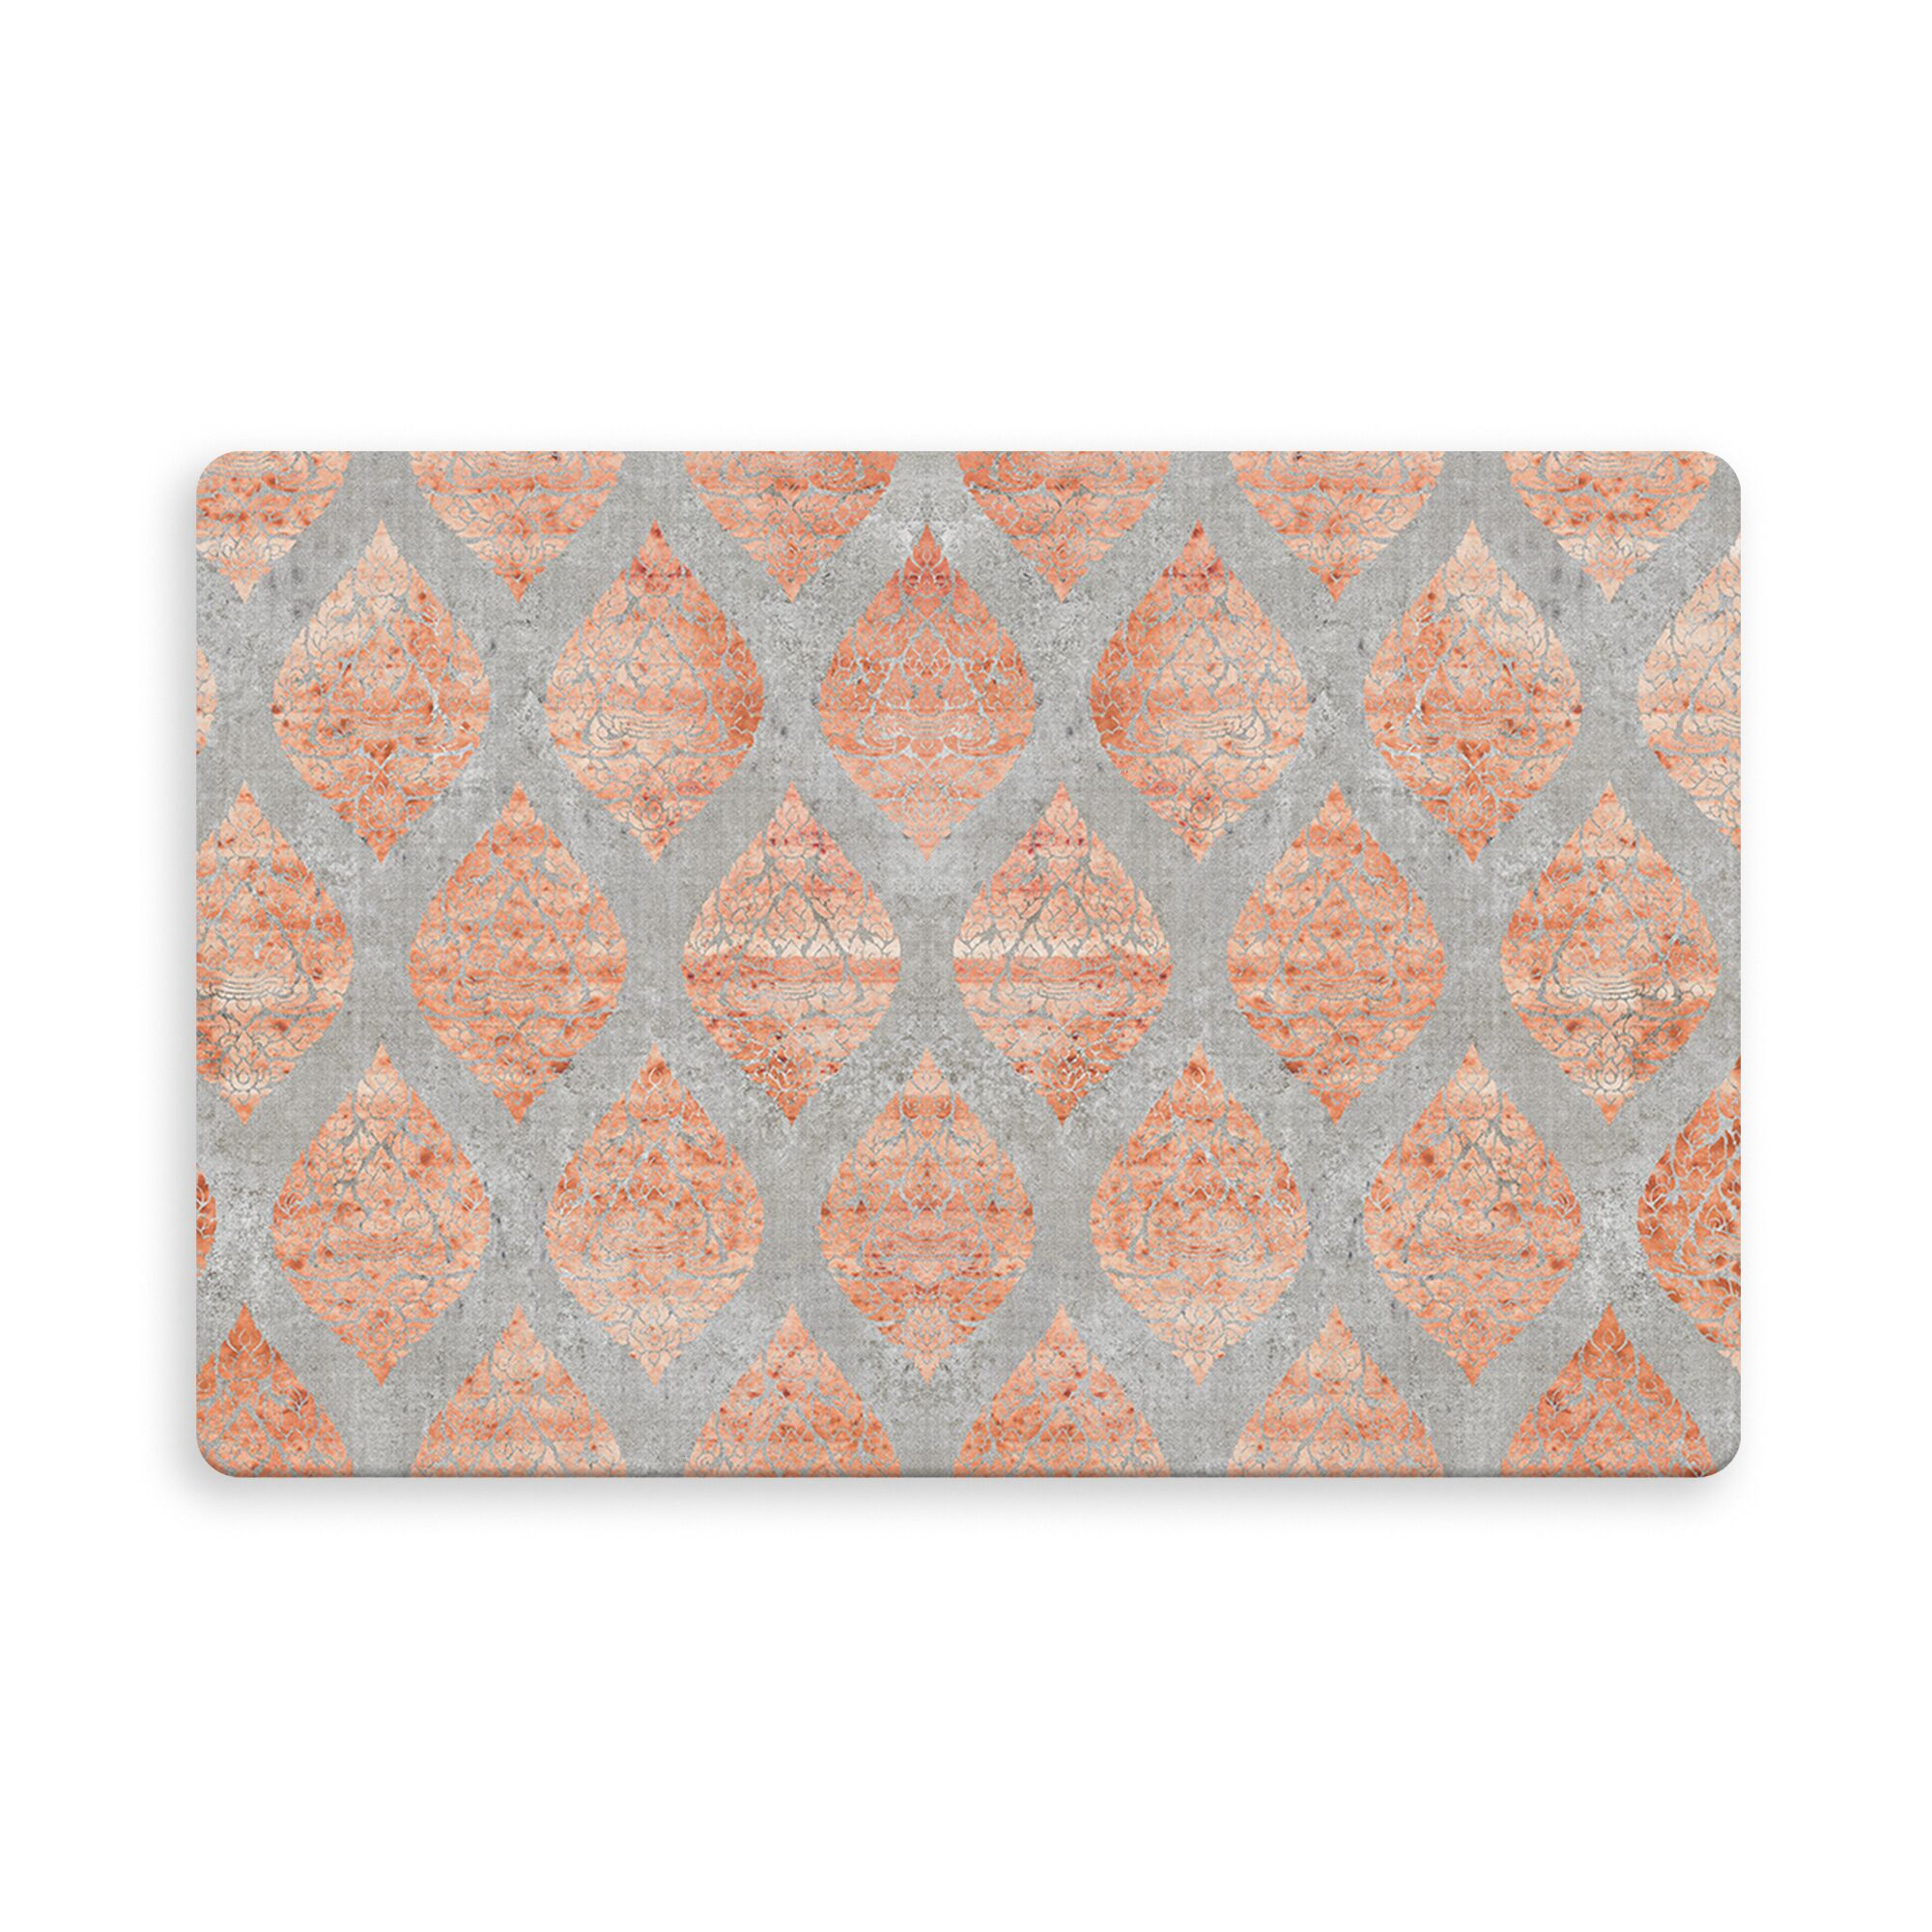 Reichenbach Indoor/Outdoor Doormat Color: Orange/Gray, Mat Size: Rectangle 2'6